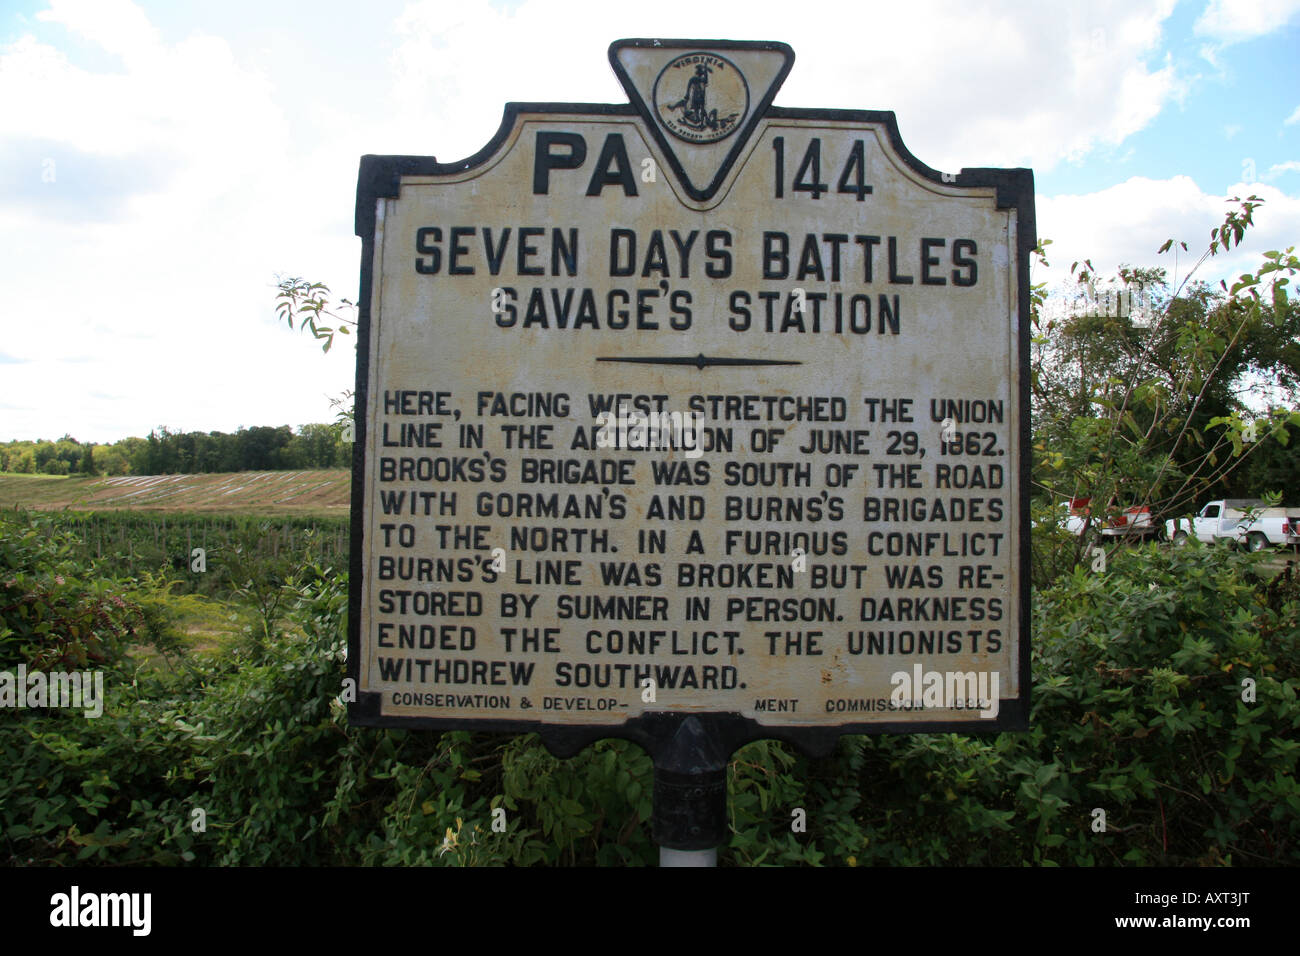 A memorial plaque marking the Battle of Savage's Station, Richmond, Virginia. - Stock Image